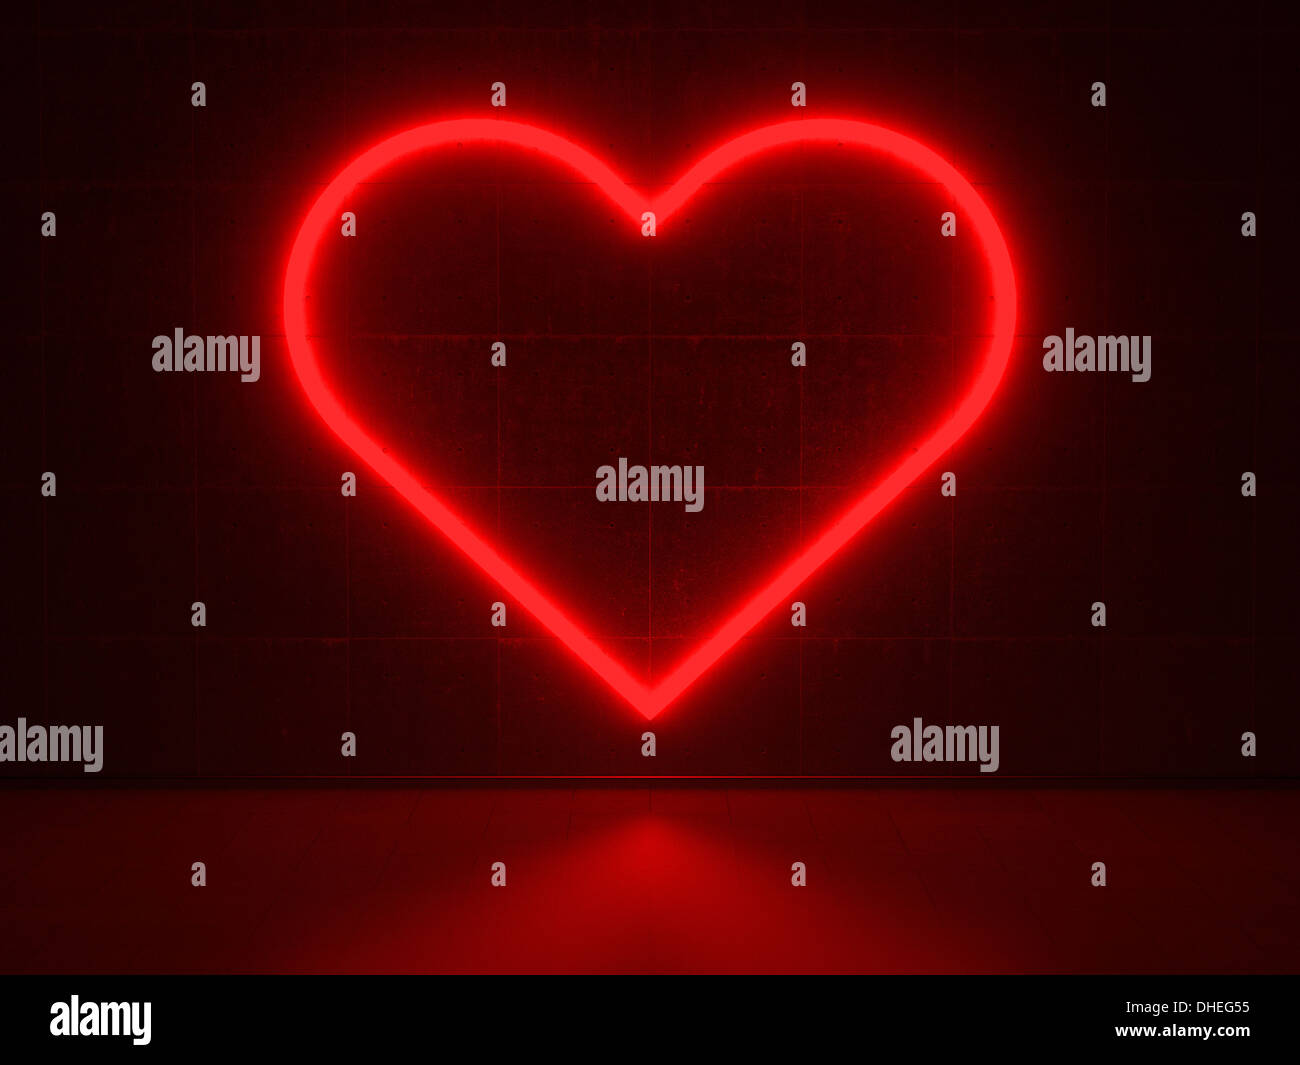 Red Heart - Series Neon Signs - Stock Image